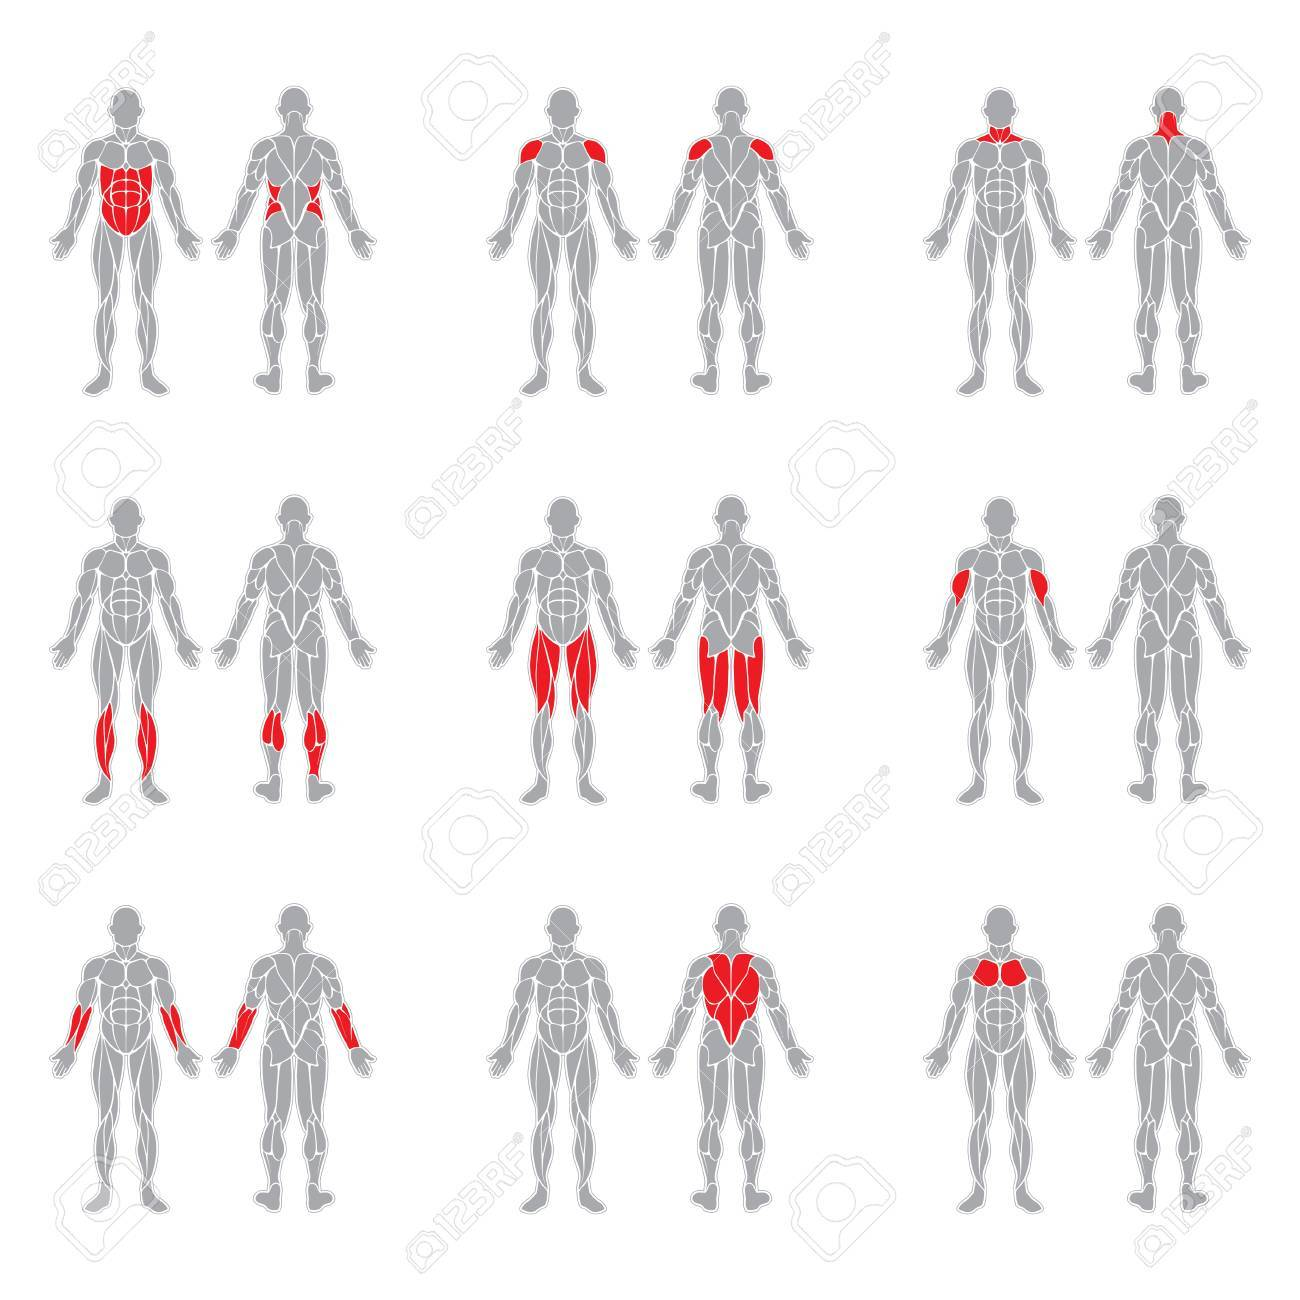 Human muscles silhouettes isolated on white background - 68319561